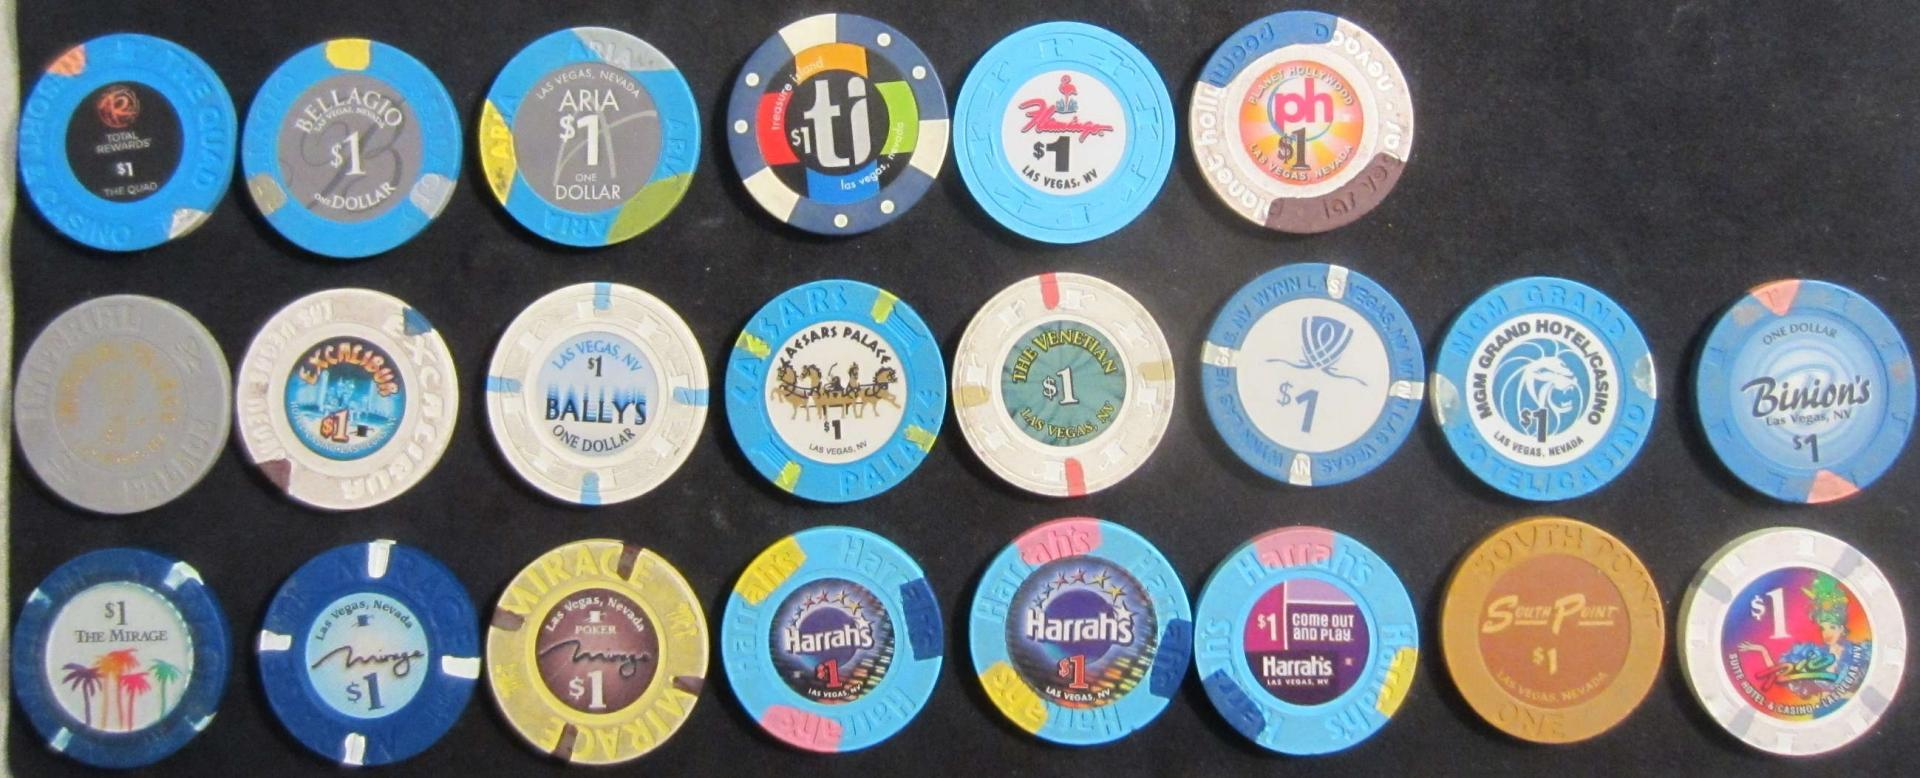 Casino Poker Chip Colors and Denominations | Professional